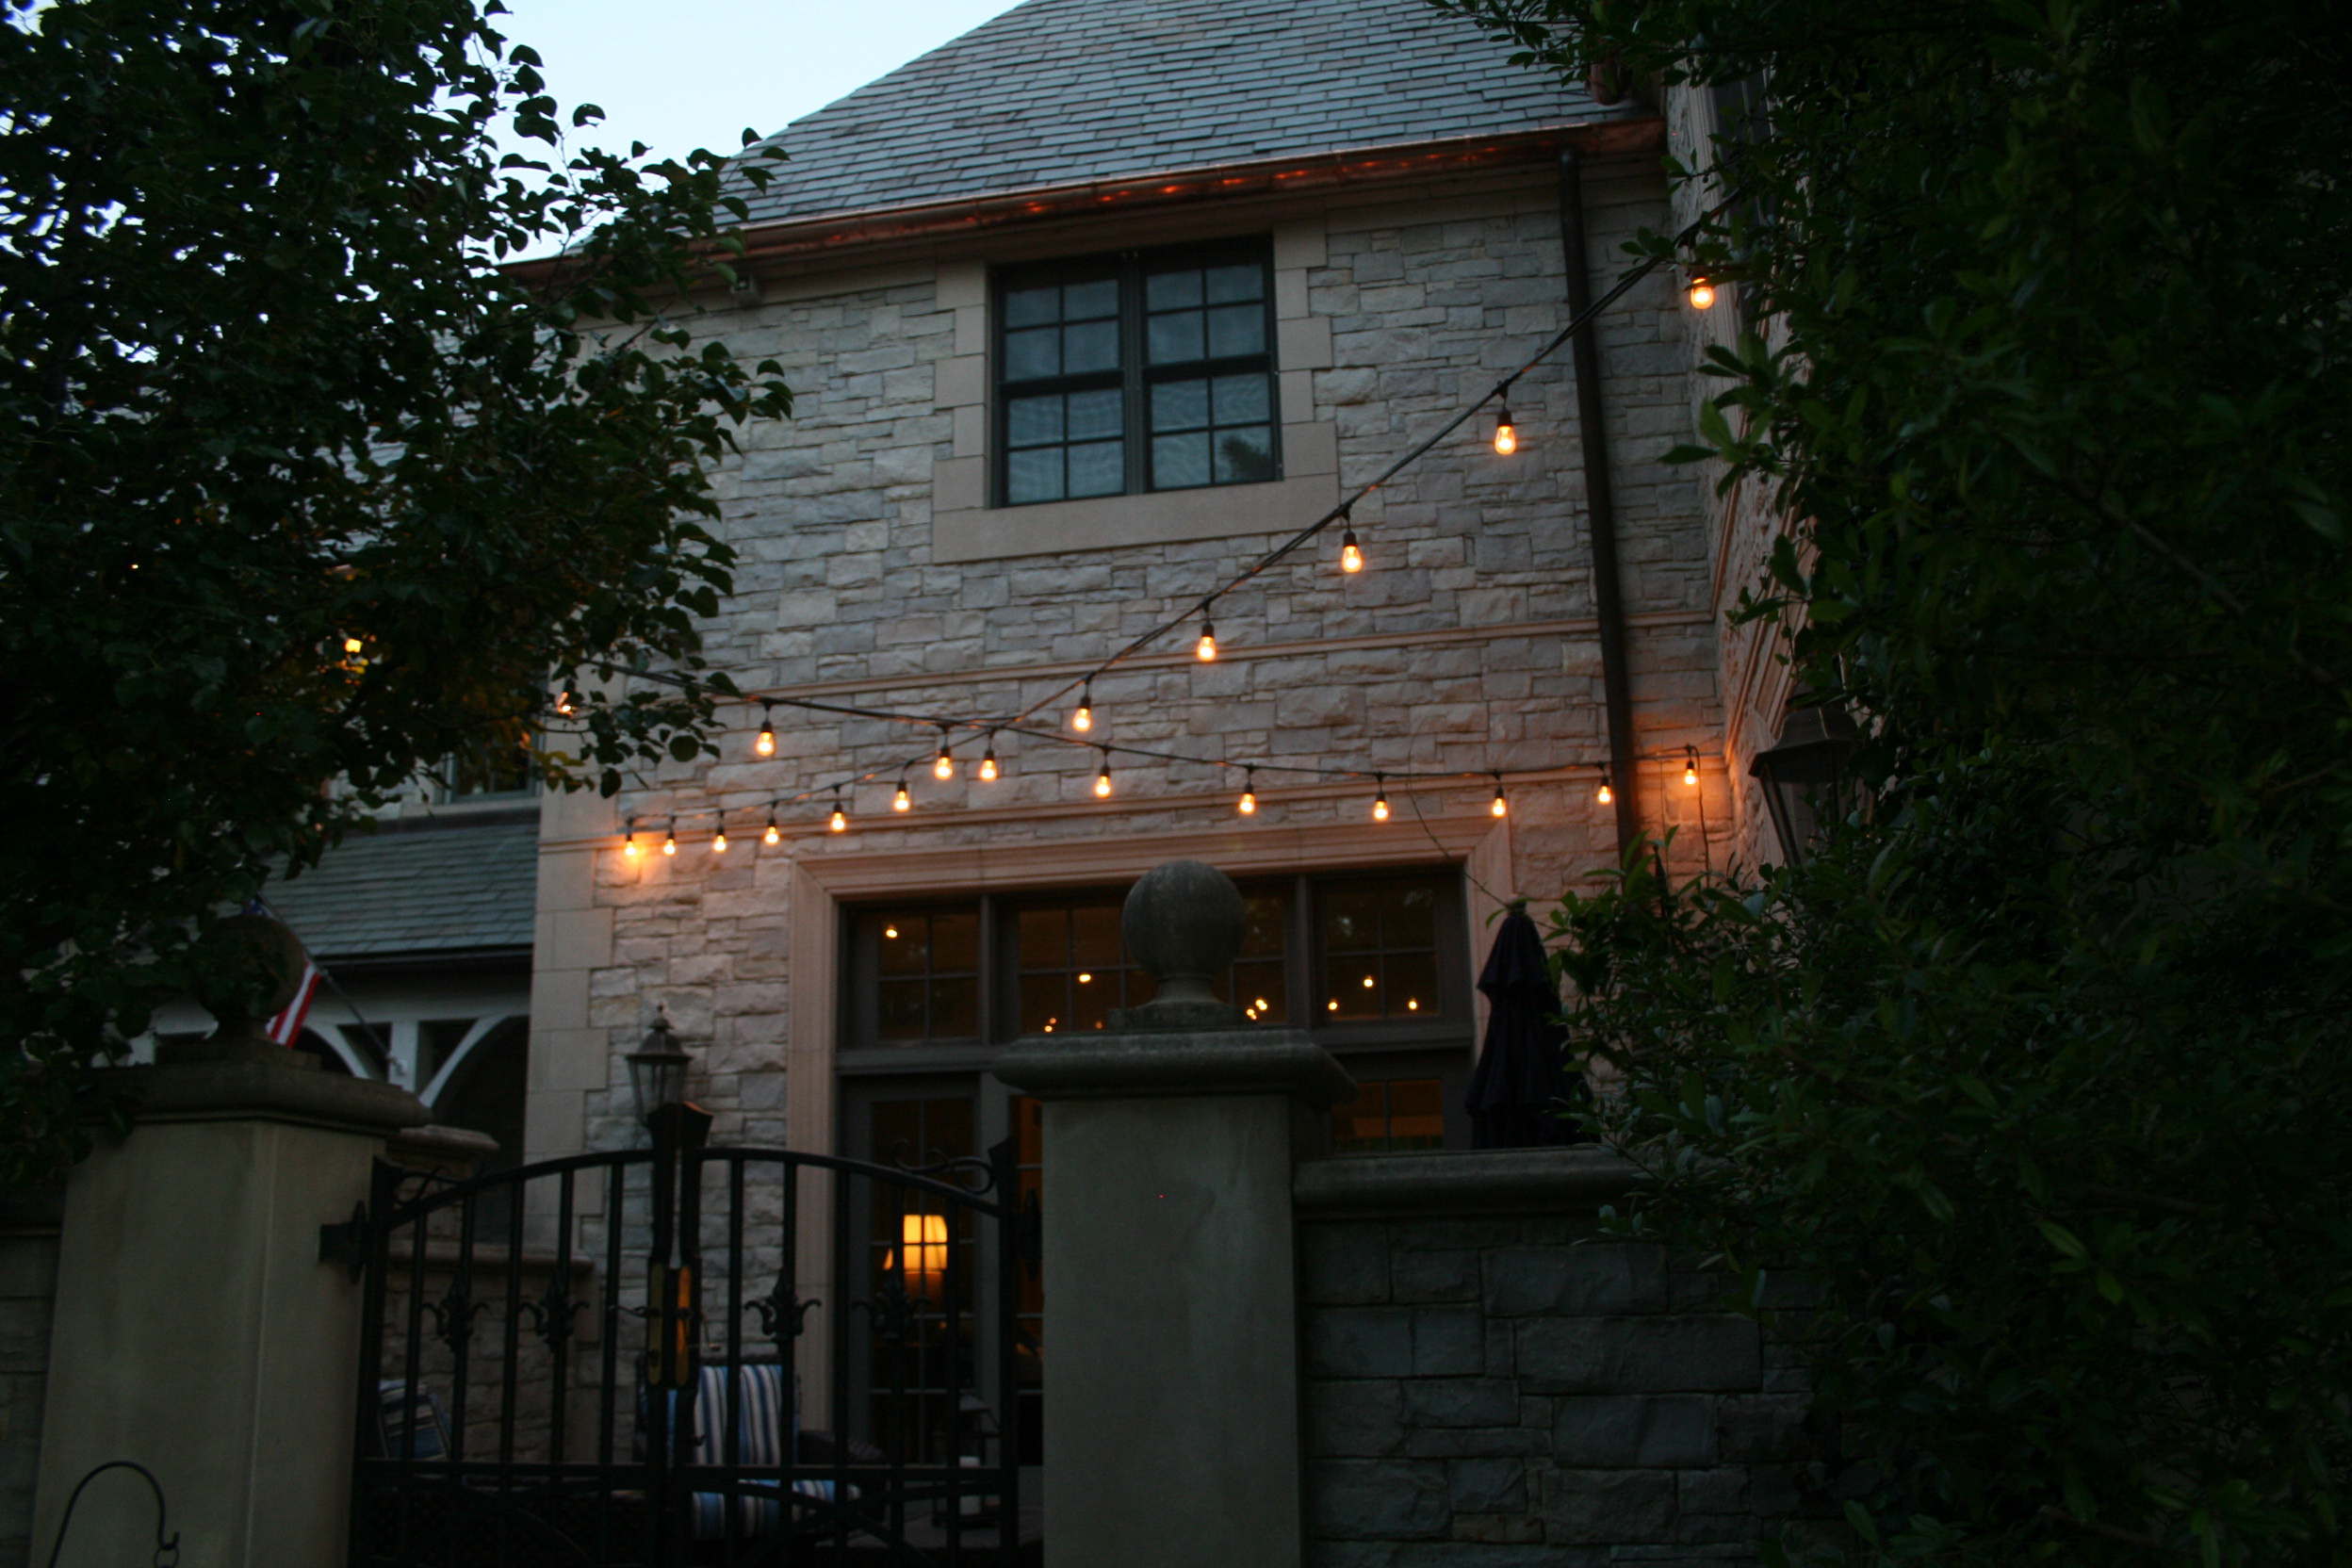 Exterior building with string lighting